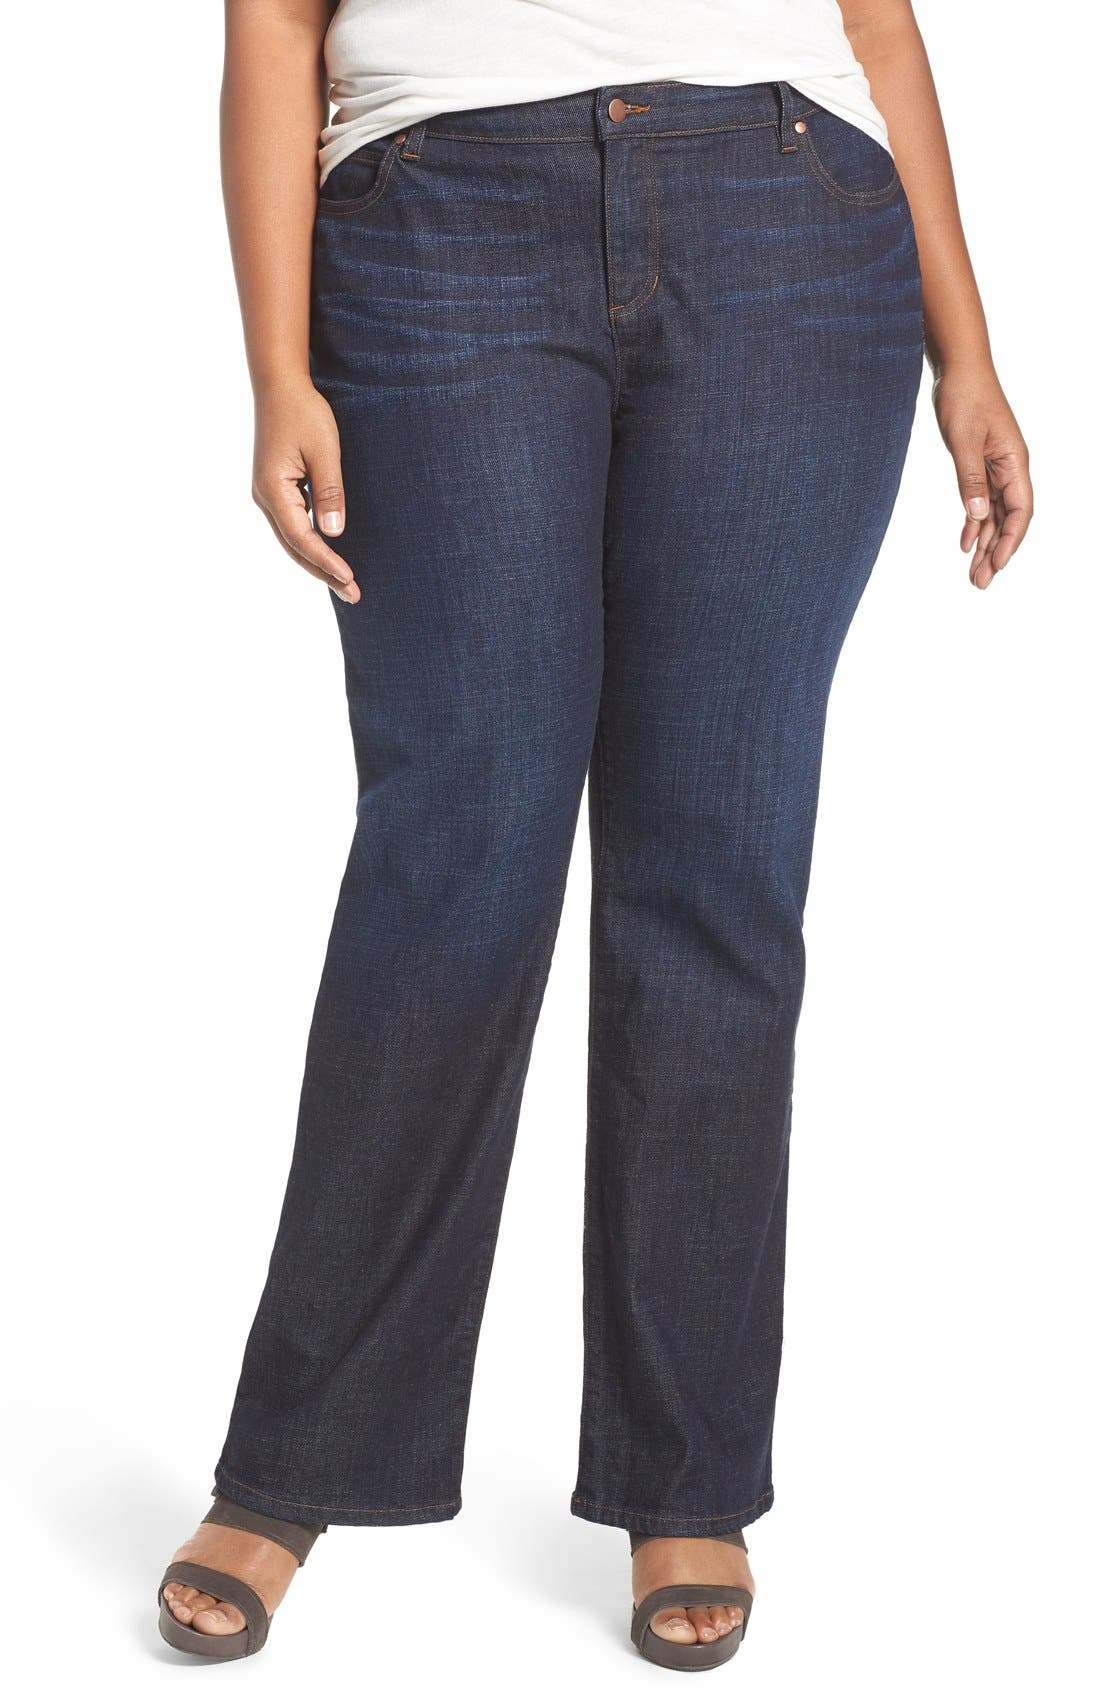 Jeans for Women - The Latest Trends in Women's Jeans at Affordable Prices by Royalty Jeans. It Is Designer Jeans for Curvy Women with Comfortable and Perfect Shape Women Jeans. Also, in Jeans for Plus Size Women.